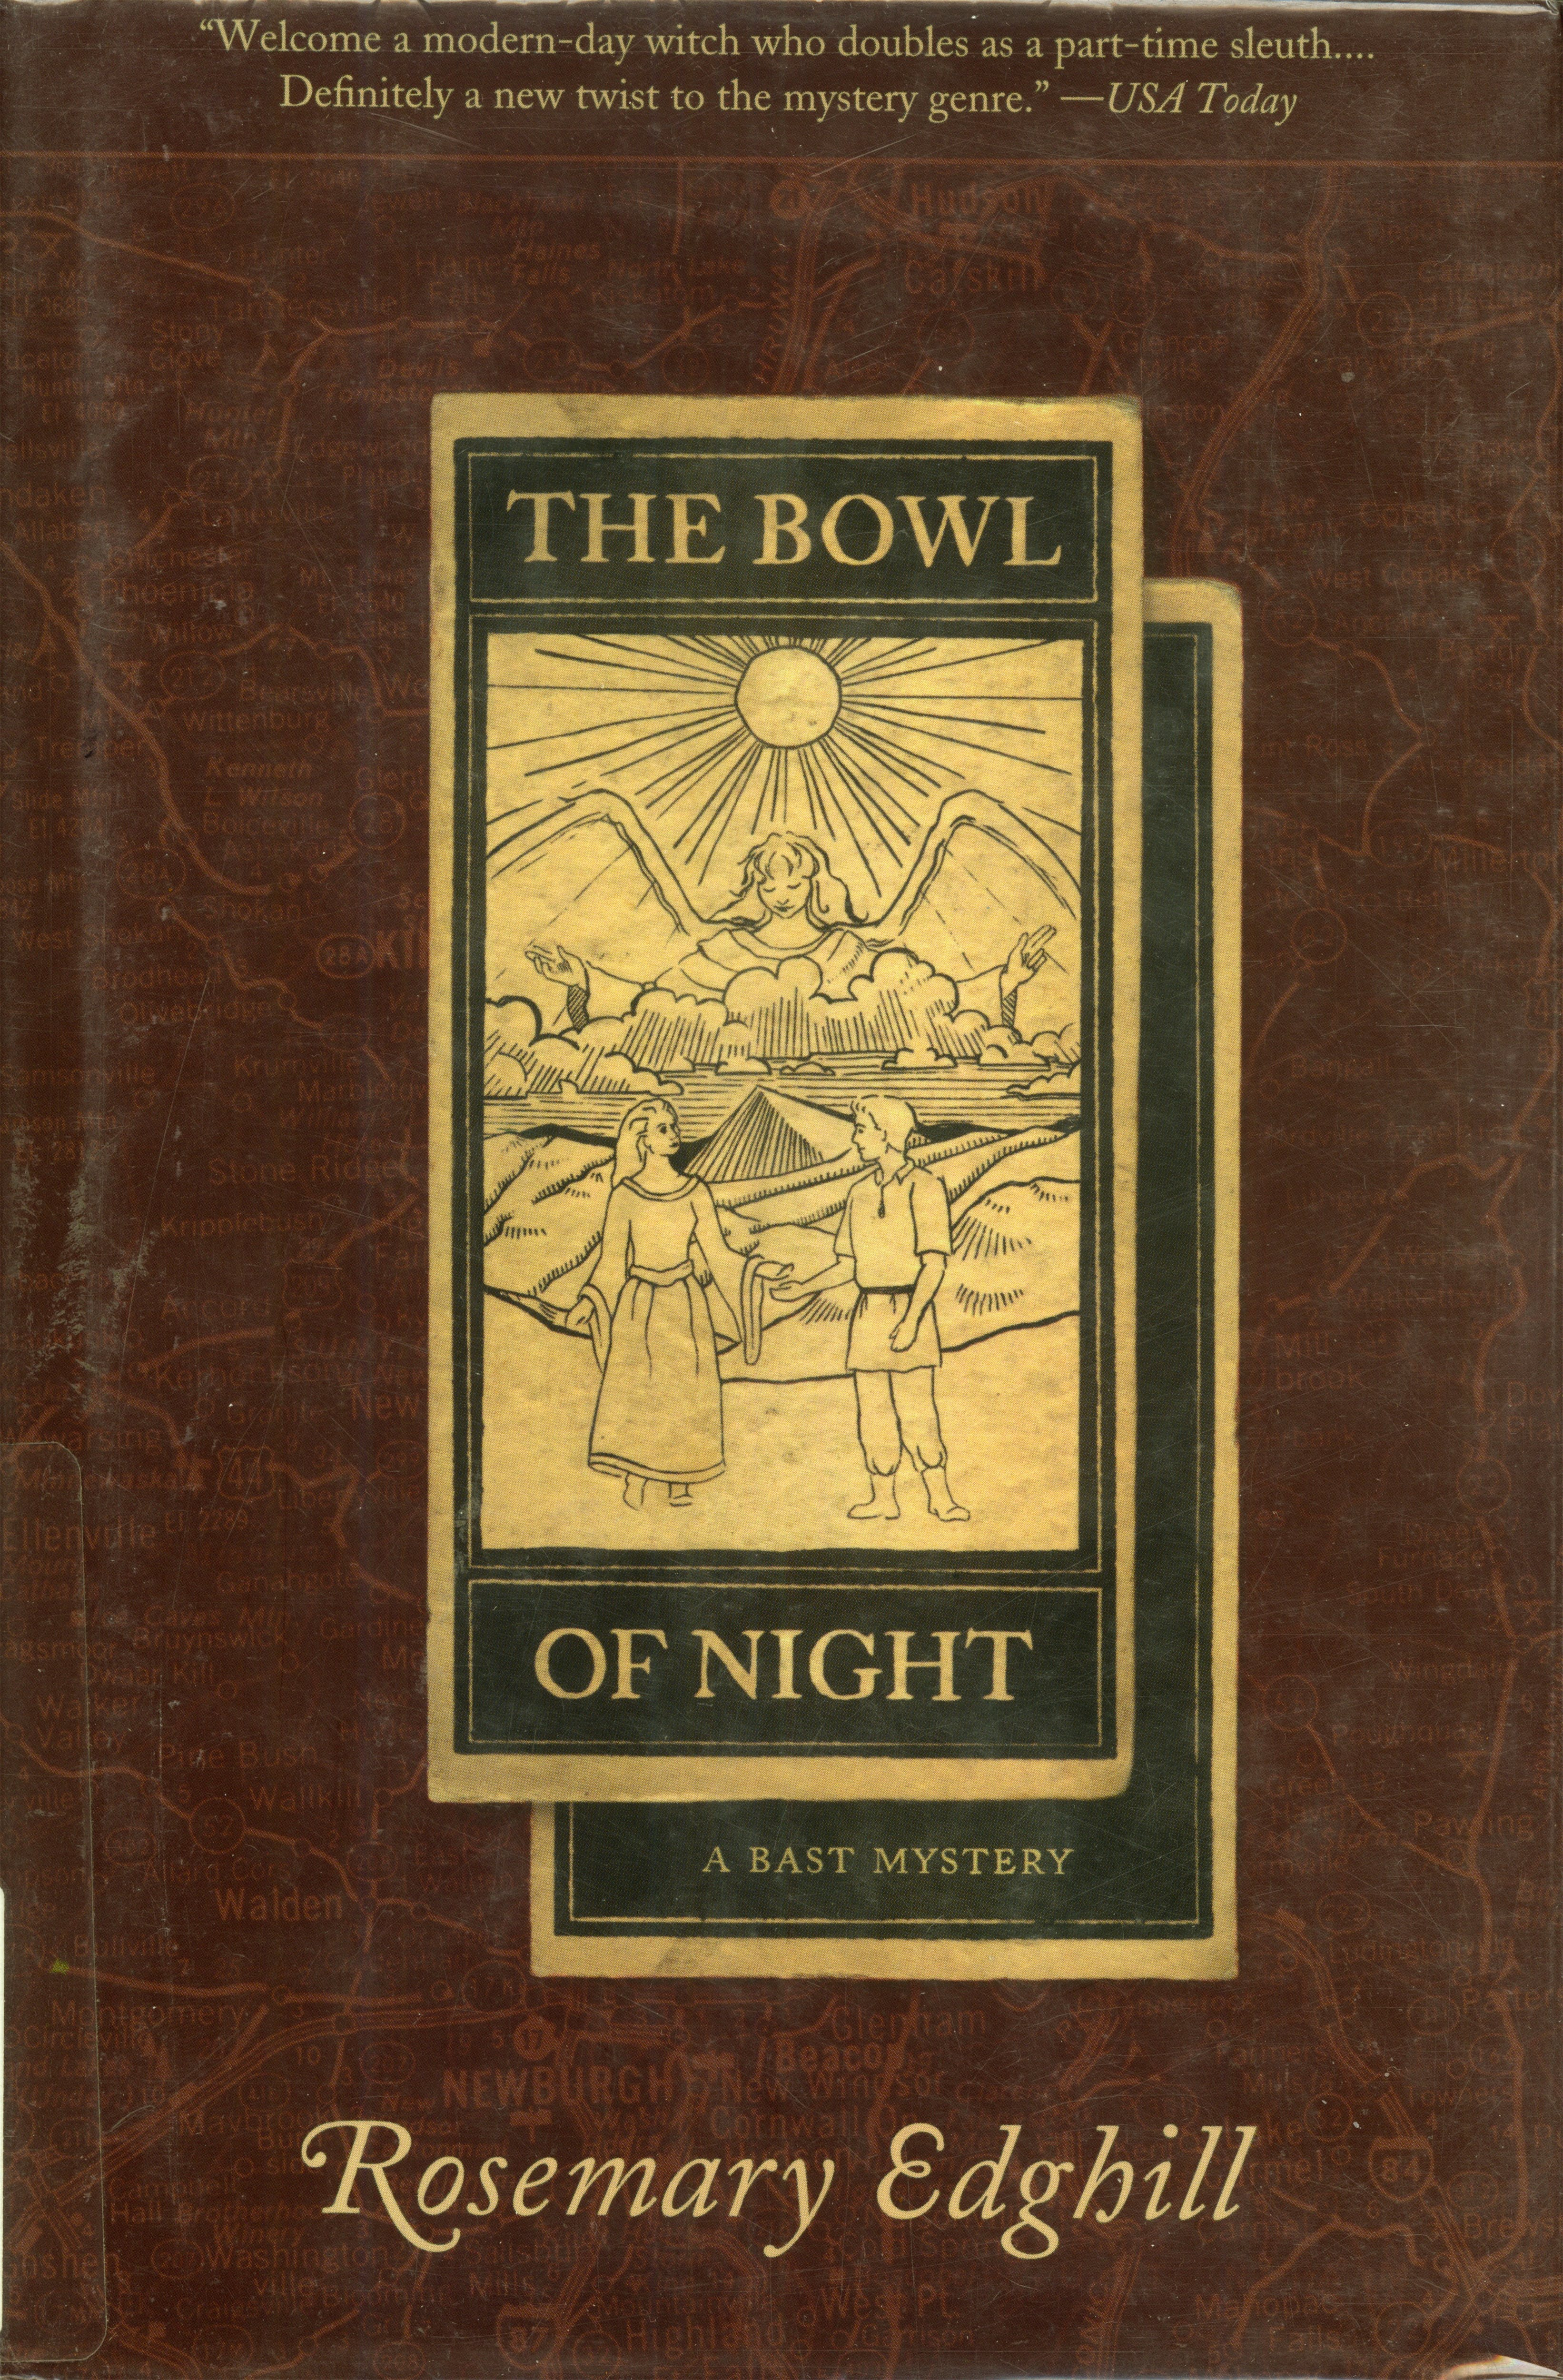 Image of The Bowl of Night